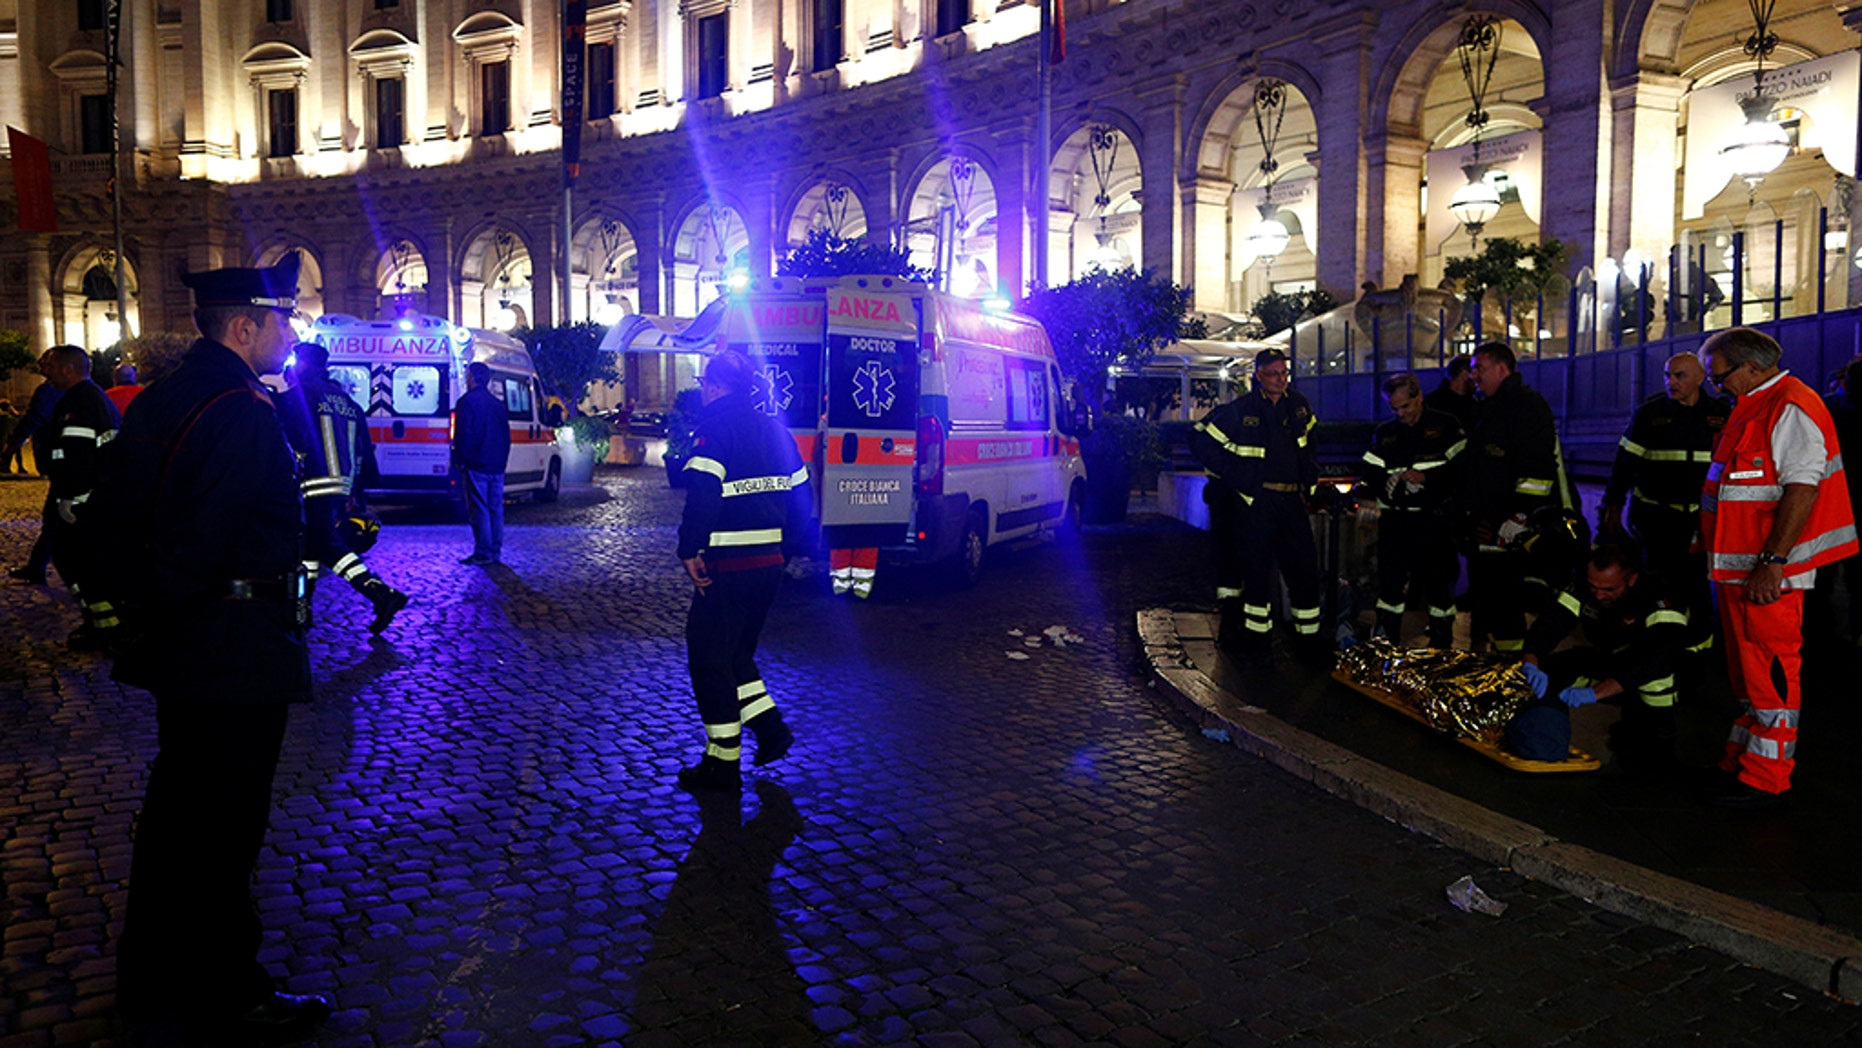 An injured person is seen outside the underground where some of CSKA Moscow supporters were injured in Rome, Italy, October 23, 2018.